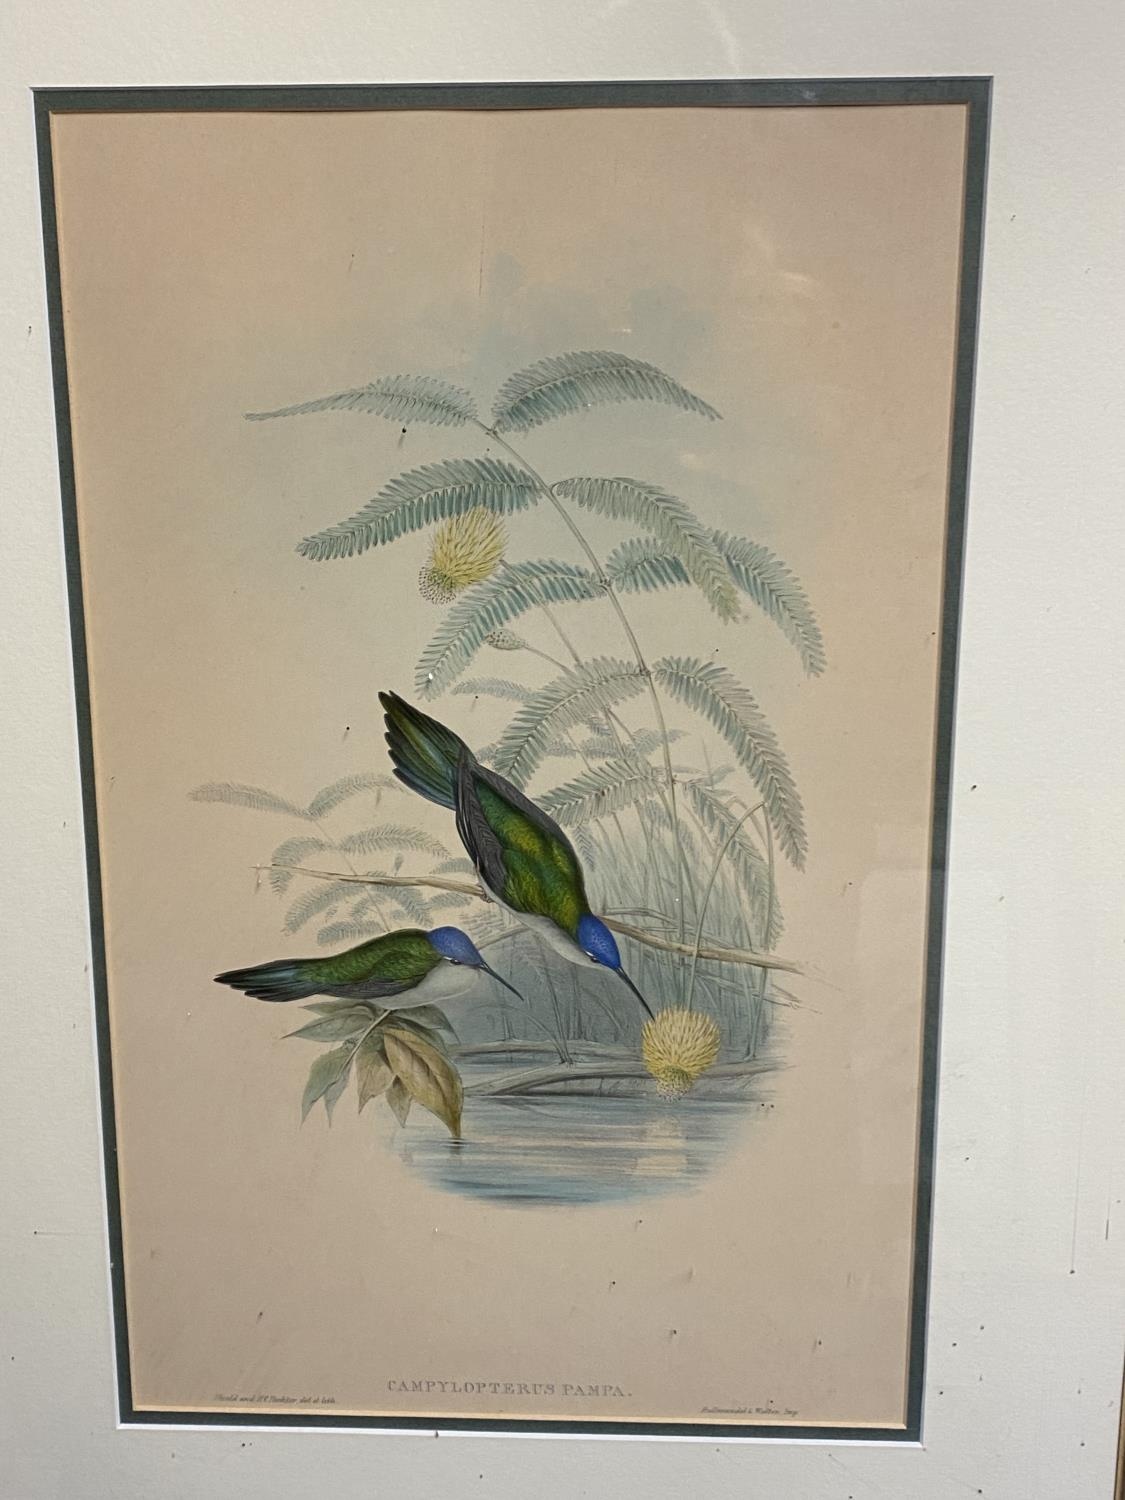 Set of 5 framed and glazed large coloured prints of Humming Birds (condition, some foxing), and - Image 4 of 7